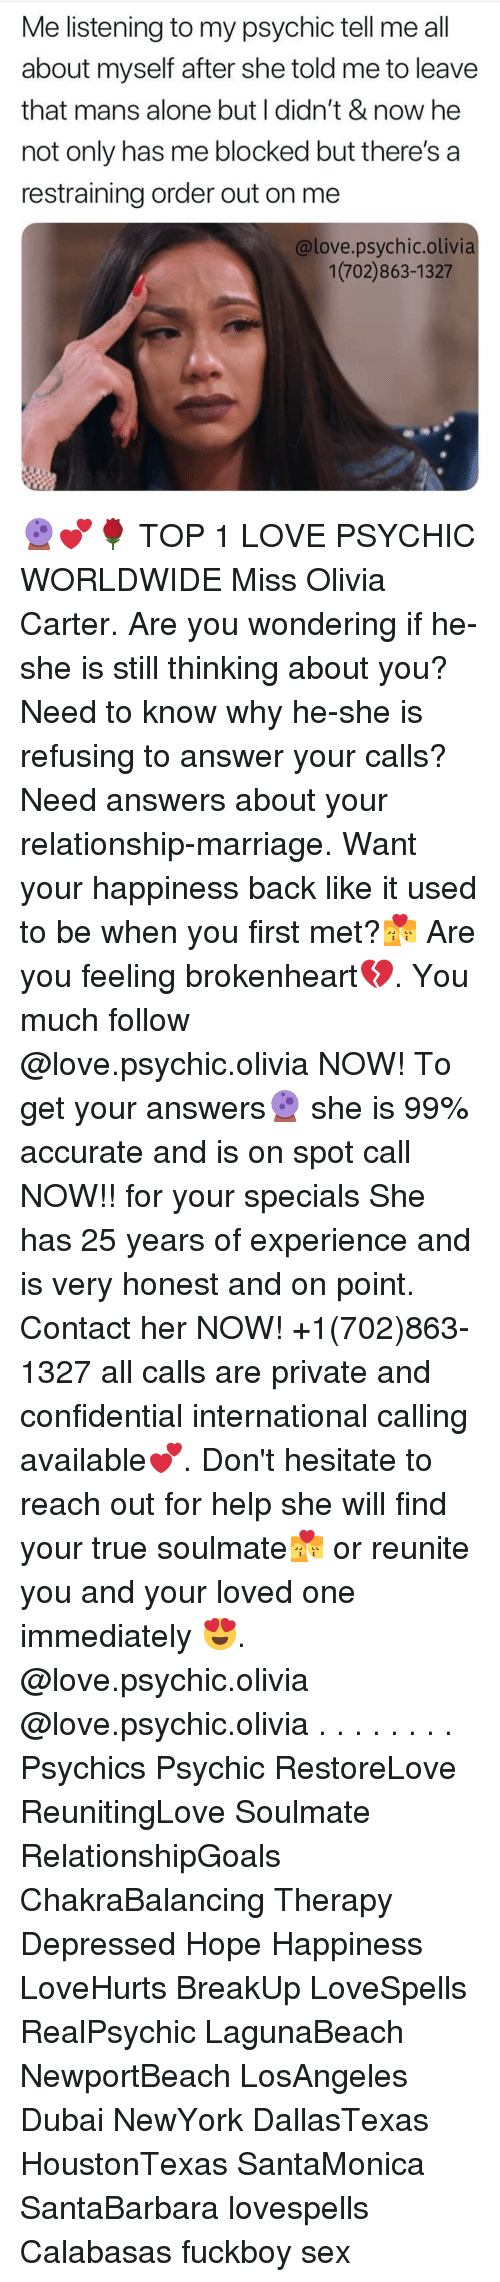 brokenheart: Me listening to my psychic tell me all  about myself after she told me to leave  that mans alone but I didn't & now he  not only has me blocked but there's a  restraining order out on me  @love.psychic.olivia  1(702)863-1327 🔮💕🌹 TOP 1 LOVE PSYCHIC WORLDWIDE Miss Olivia Carter. Are you wondering if he-she is still thinking about you? Need to know why he-she is refusing to answer your calls? Need answers about your relationship-marriage. Want your happiness back like it used to be when you first met?💏 Are you feeling brokenheart💔. You much follow @love.psychic.olivia NOW! To get your answers🔮 she is 99% accurate and is on spot call NOW!! for your specials She has 25 years of experience and is very honest and on point. Contact her NOW! +1(702)863-1327 all calls are private and confidential international calling available💕. Don't hesitate to reach out for help she will find your true soulmate💏 or reunite you and your loved one immediately 😍. @love.psychic.olivia @love.psychic.olivia . . . . . . . . Psychics Psychic RestoreLove ReunitingLove Soulmate RelationshipGoals ChakraBalancing Therapy Depressed Hope Happiness LoveHurts BreakUp LoveSpells RealPsychic LagunaBeach NewportBeach LosAngeles Dubai NewYork DallasTexas HoustonTexas SantaMonica SantaBarbara lovespells Calabasas fuckboy sex